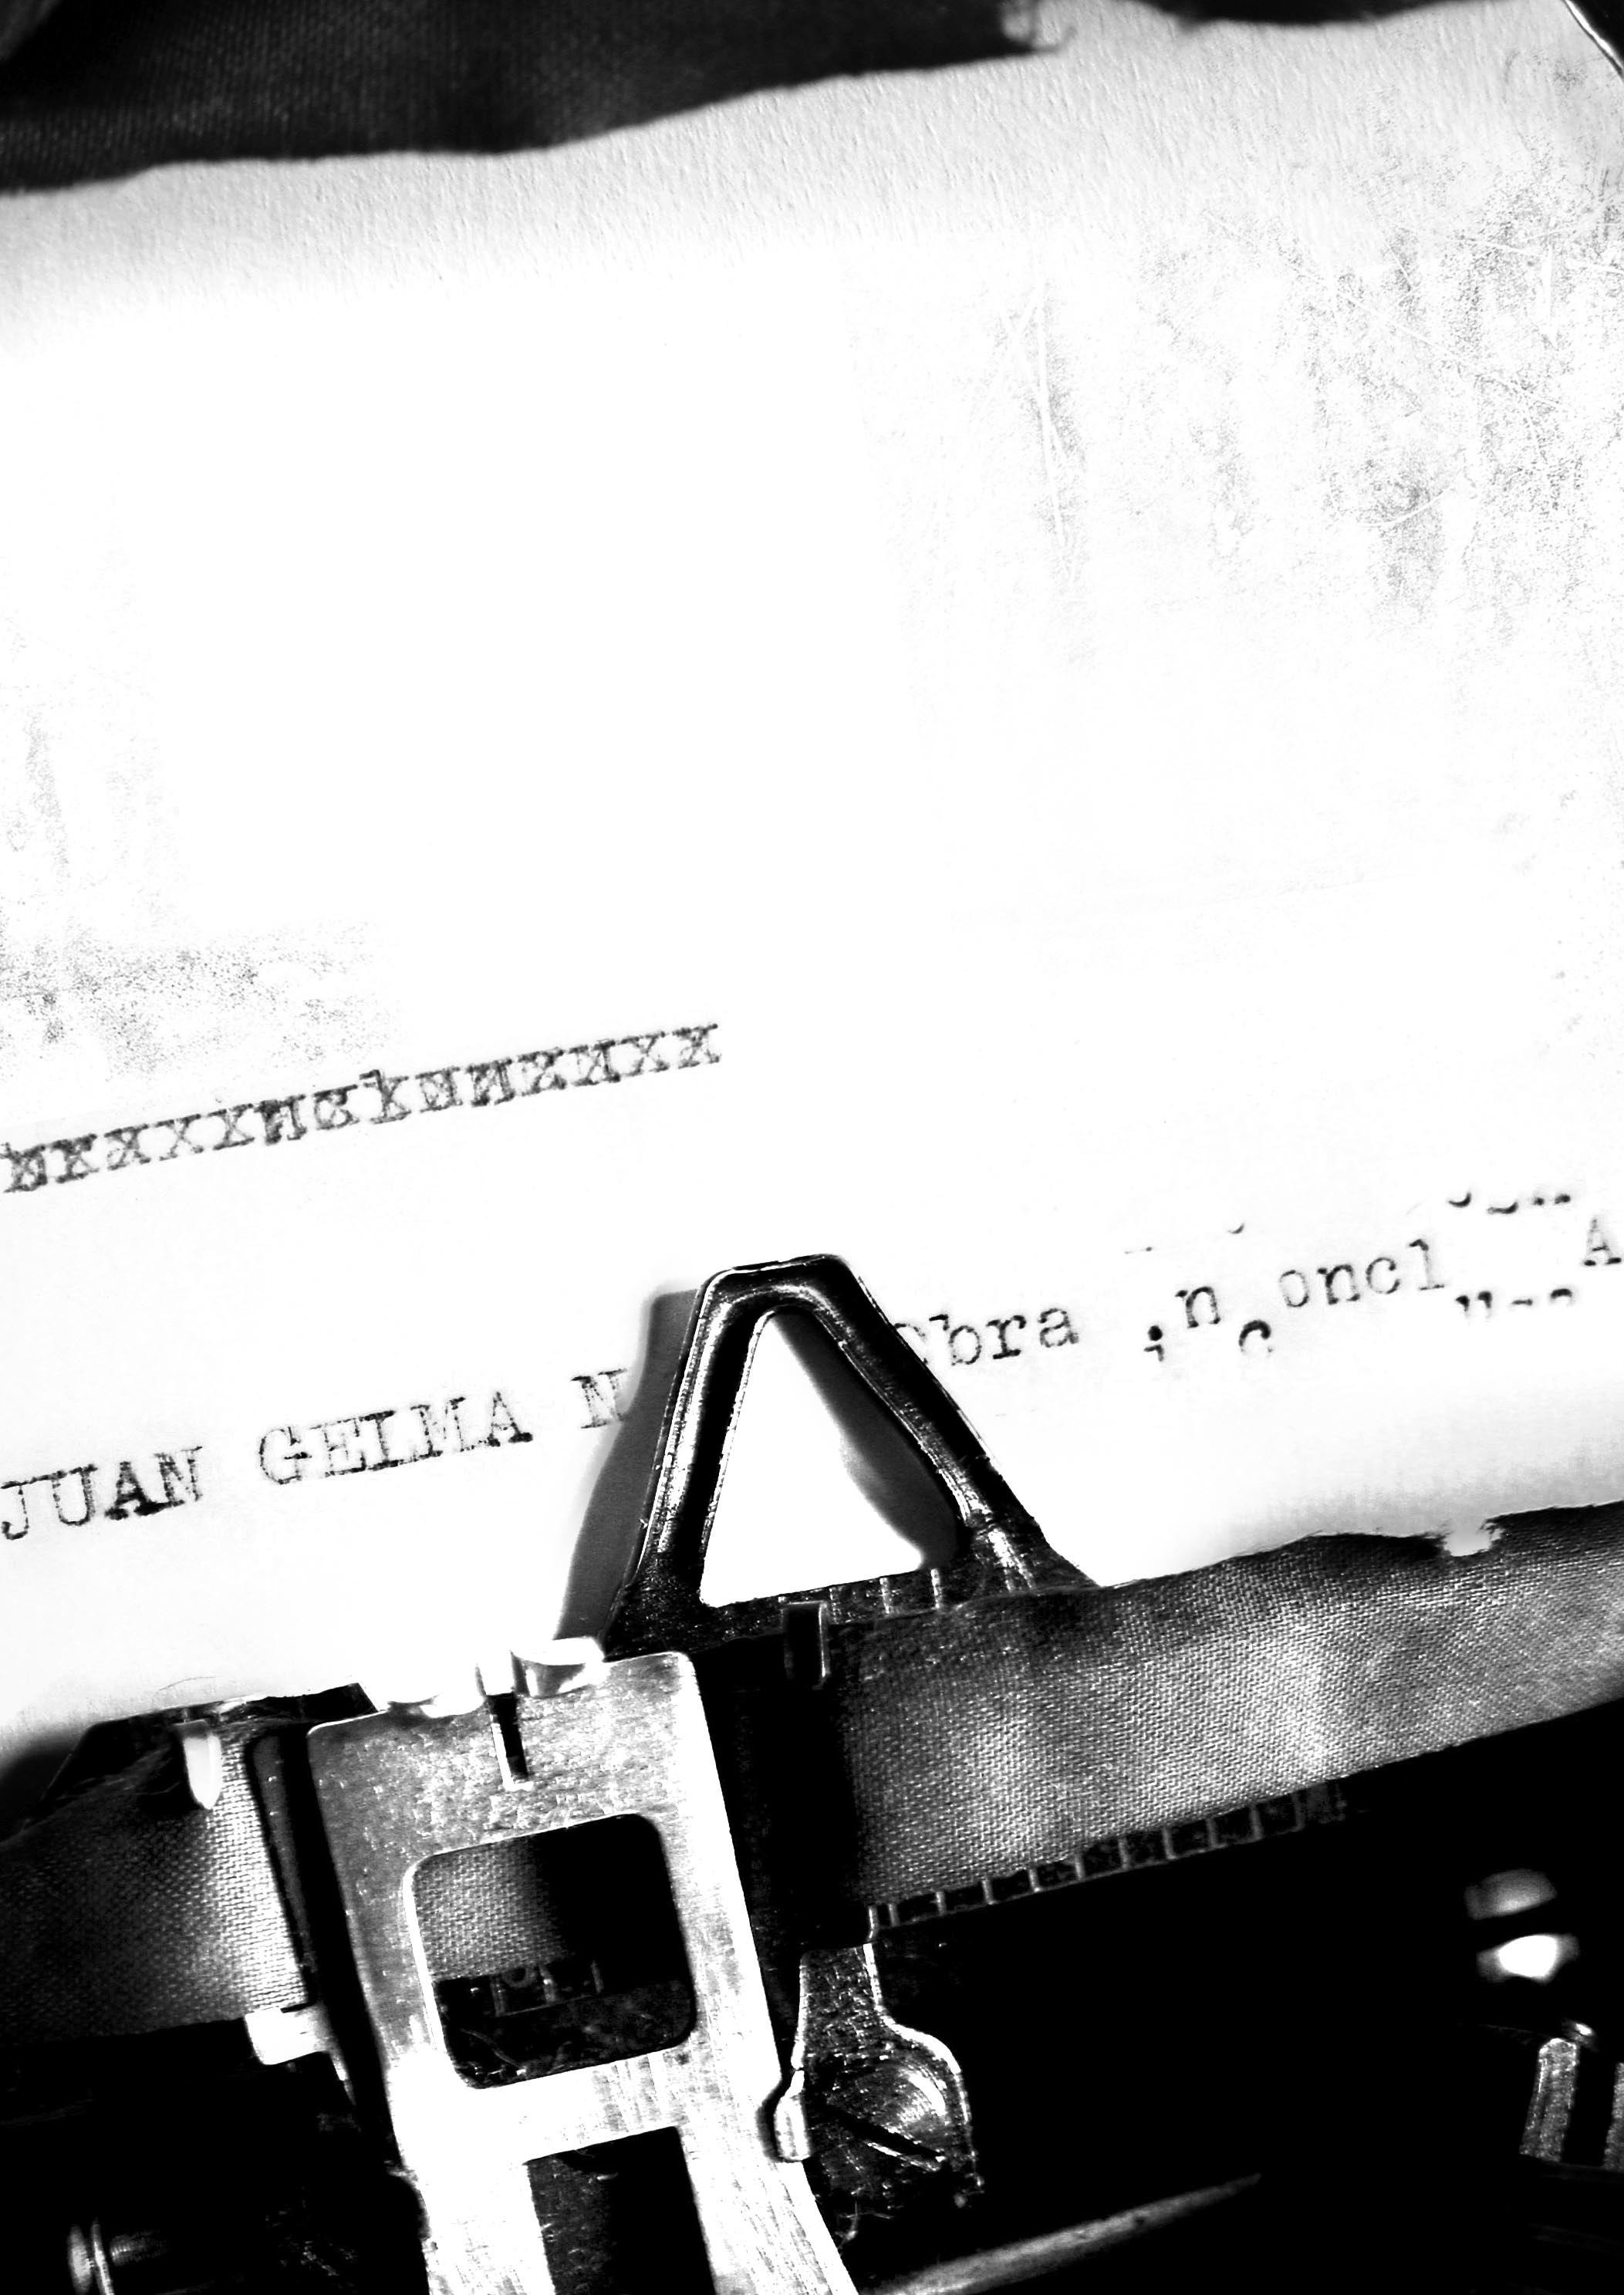 typewriter - permission for blog